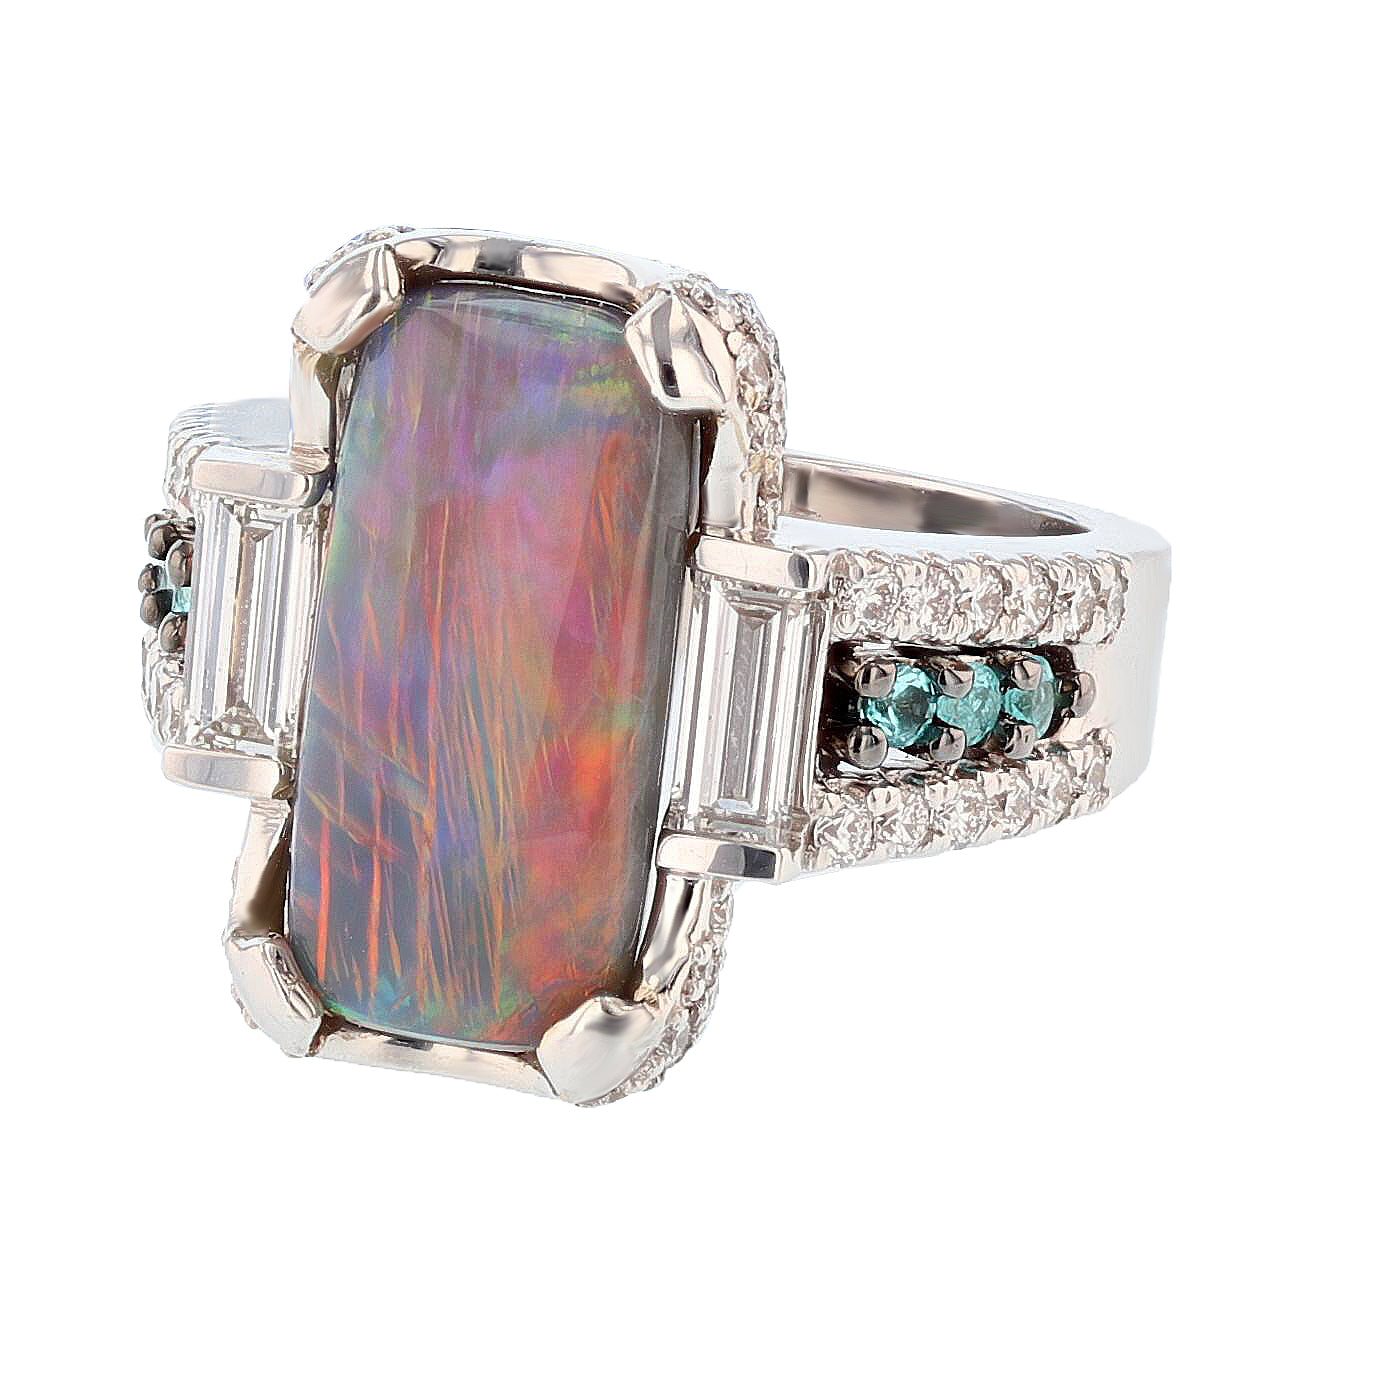 Natural Black Opal, Diamond, and Paraiba Tourmaline Ring - Nazarelle